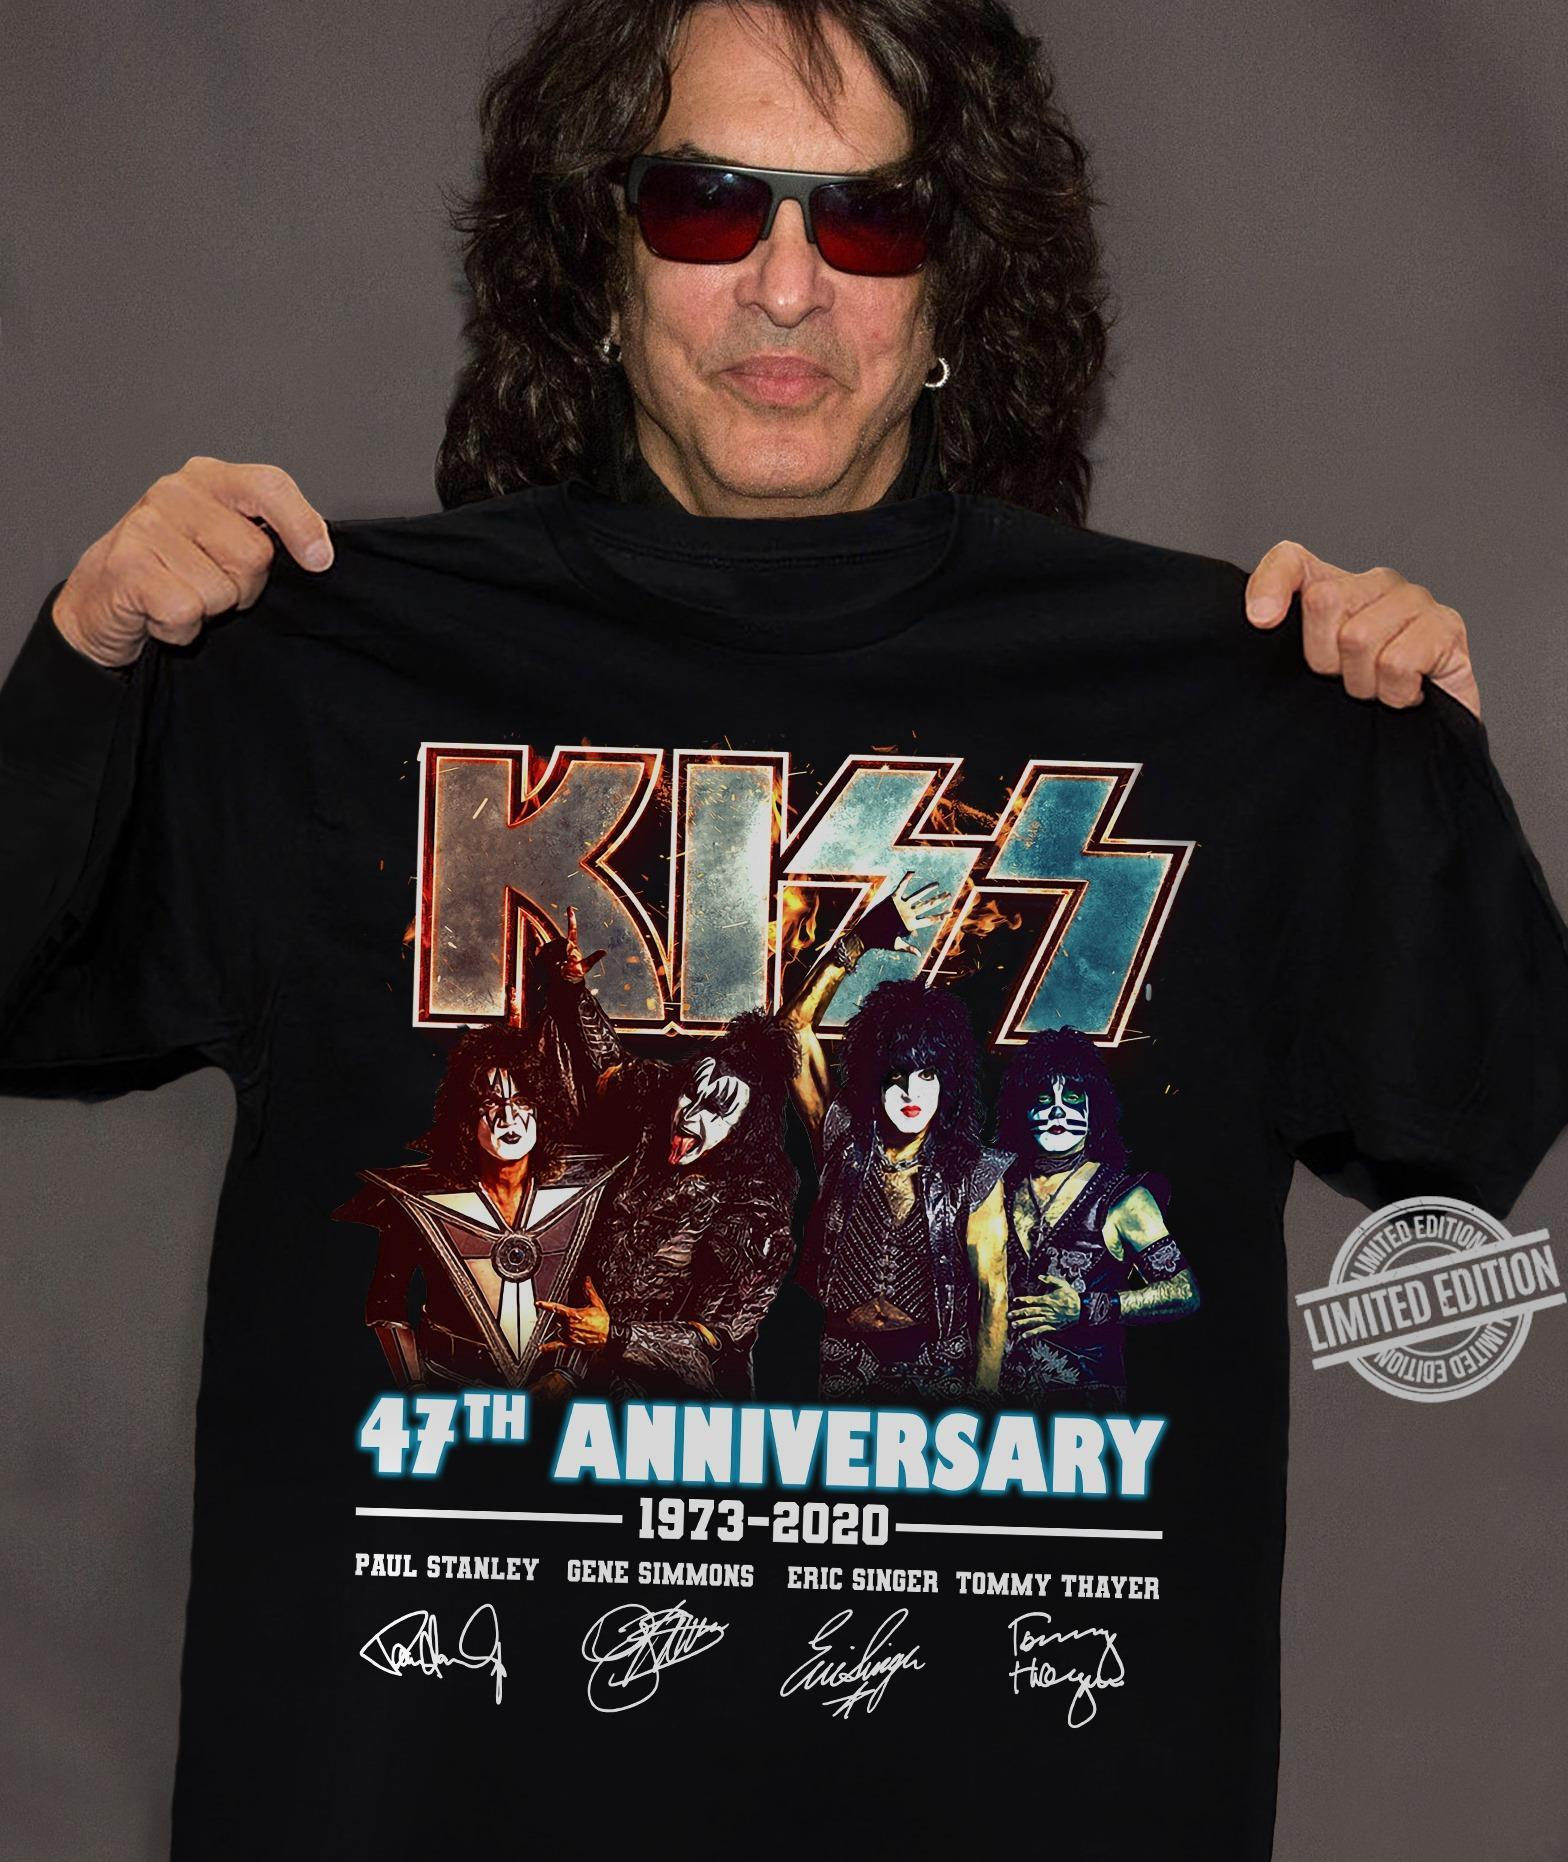 Kiss 47th Anniversary 1973-2020 Paul Stanley Gene Simmons Eric Sinder Tommy Thayer Shirt